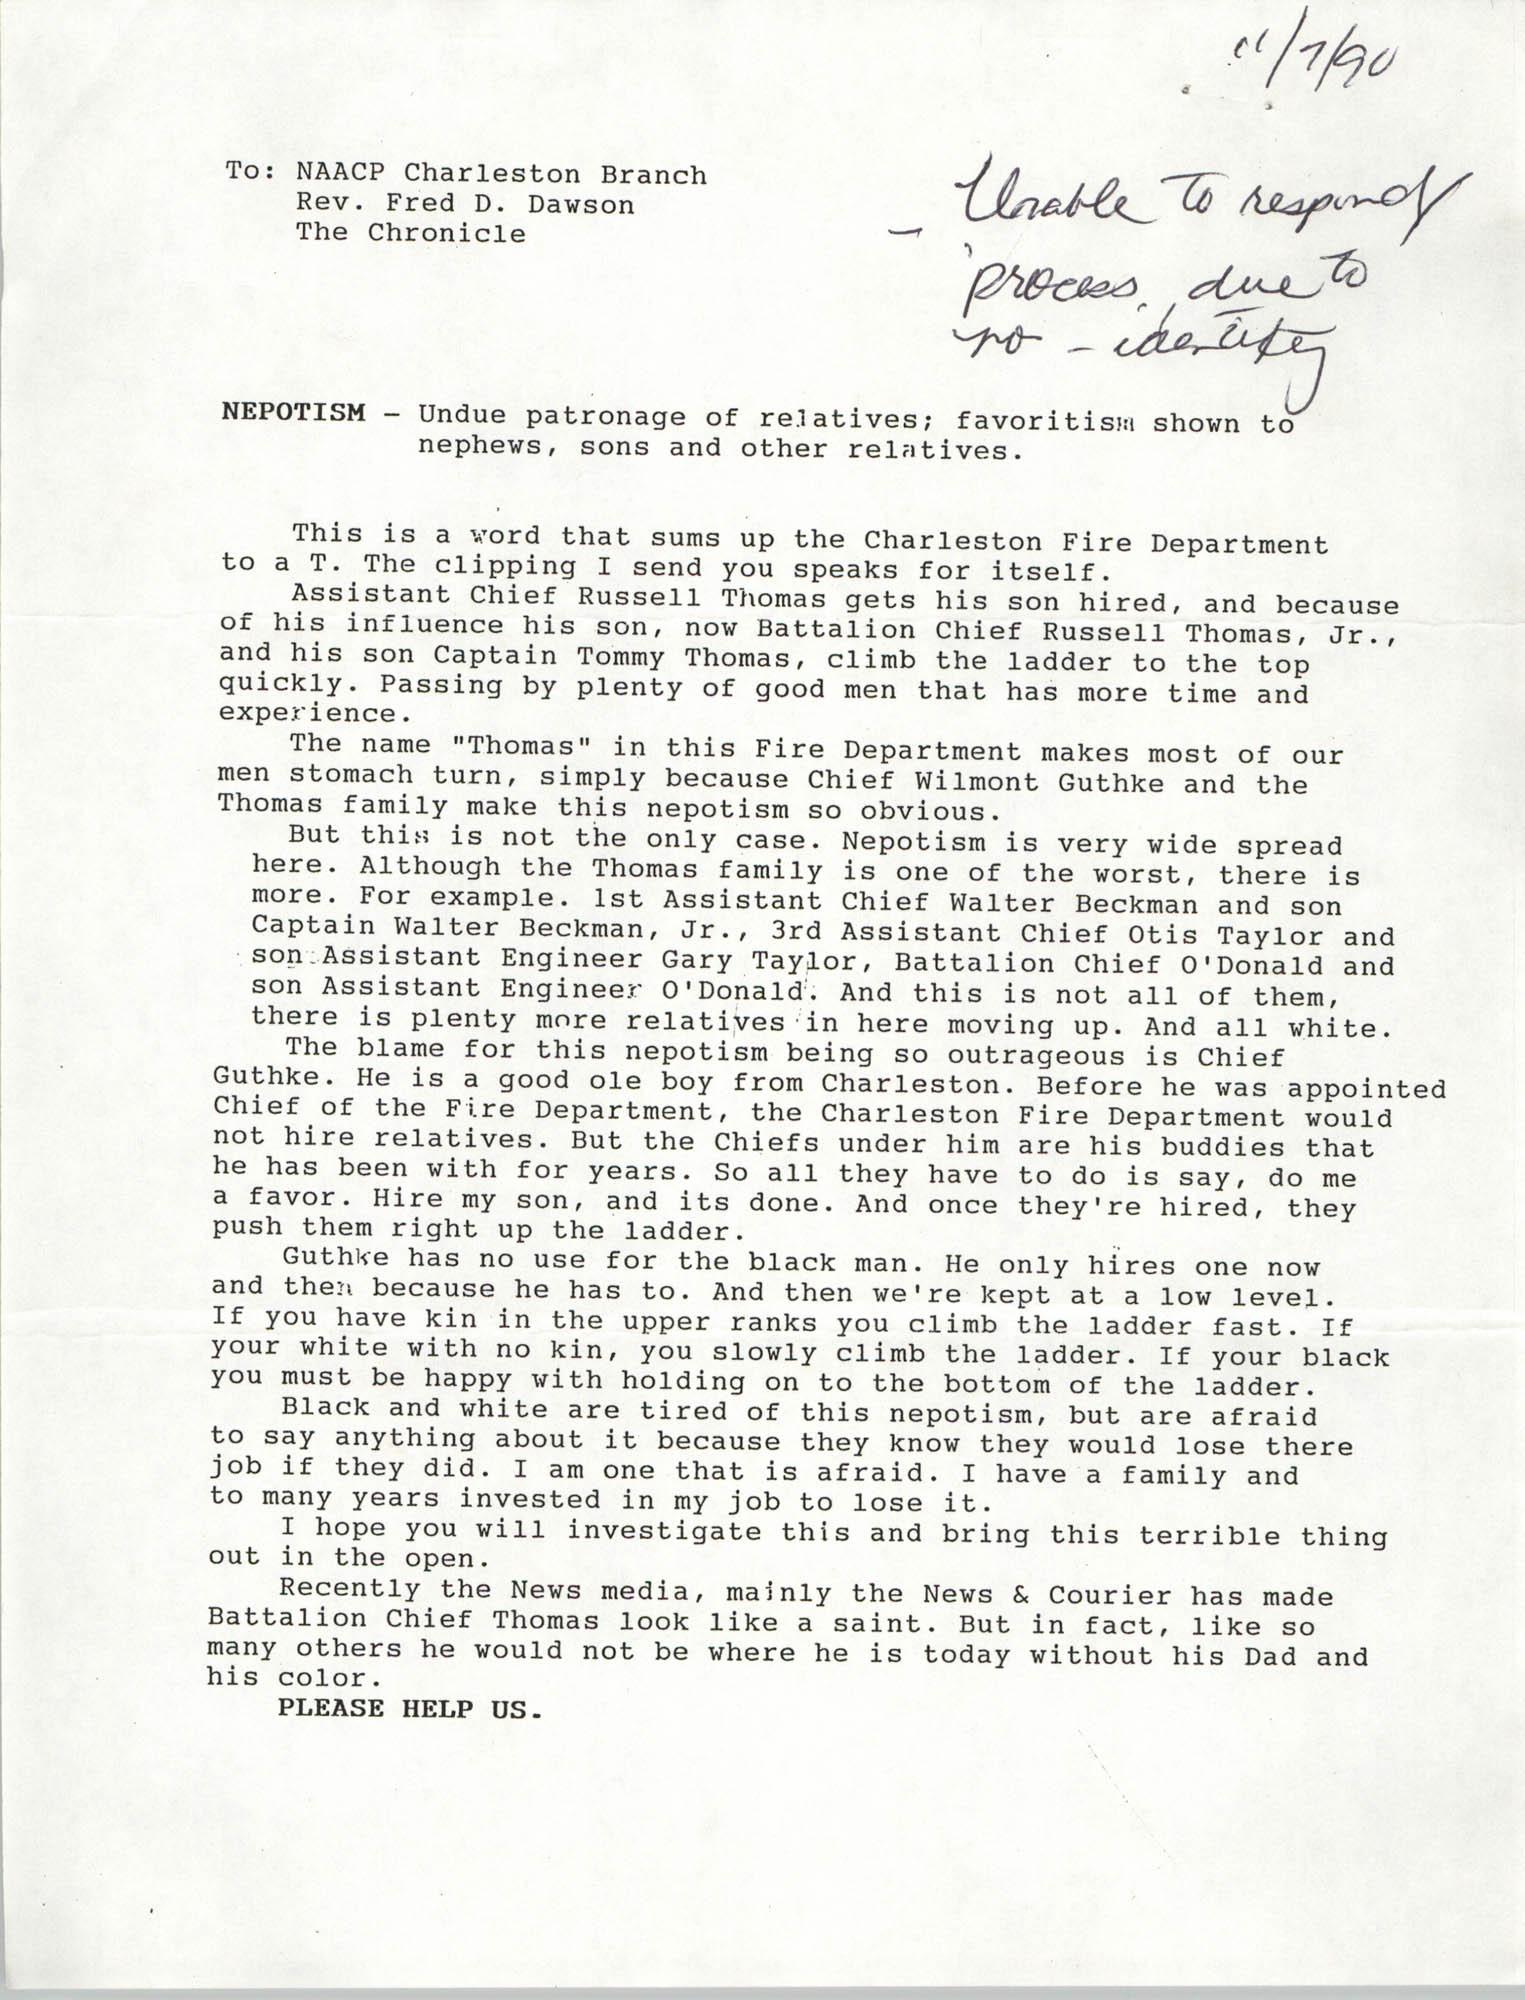 Letter from anonymous to Fred D. Dawson, November 7, 1990